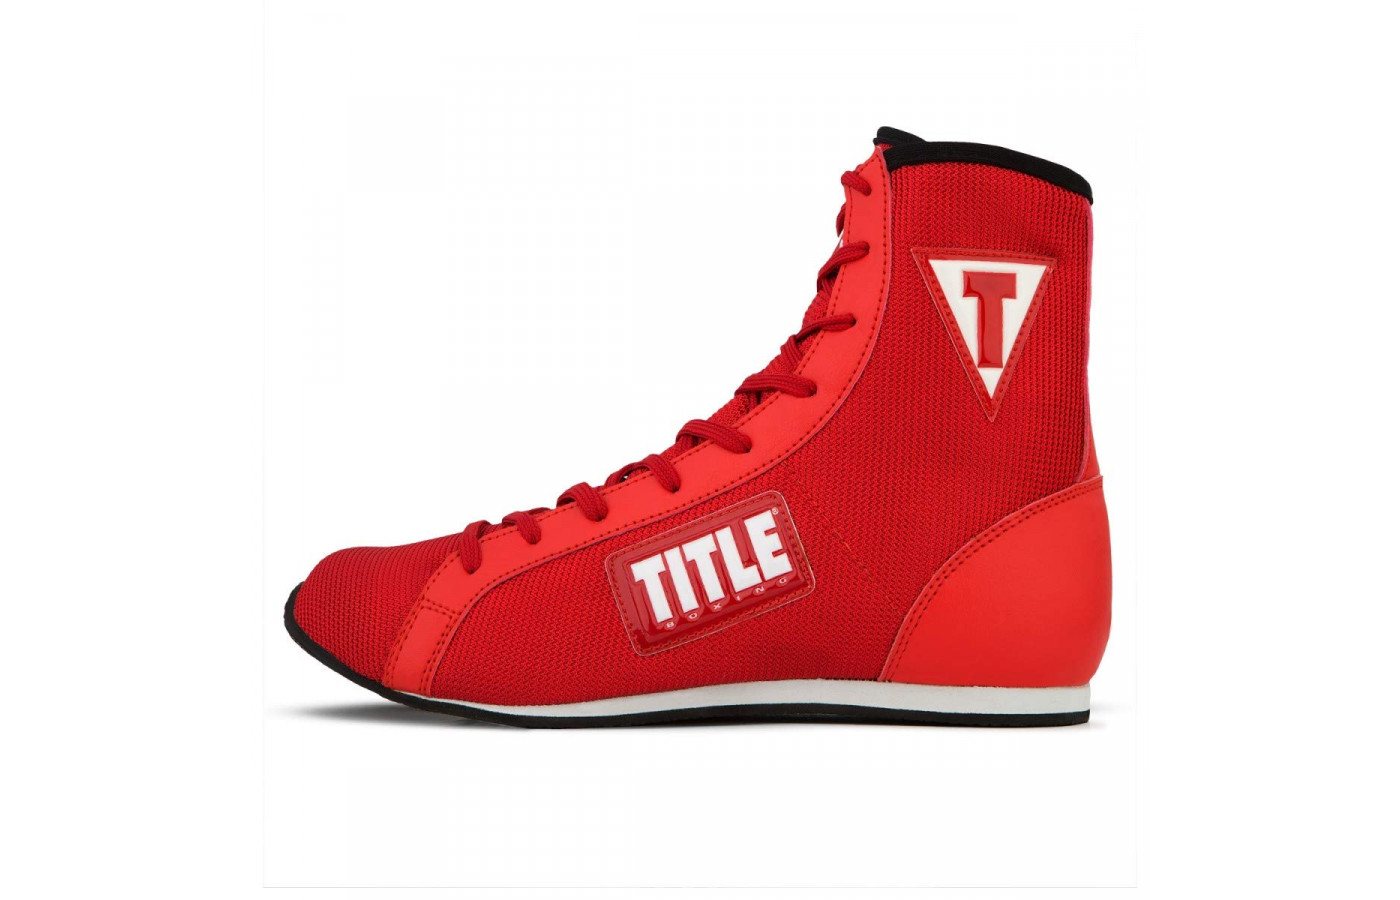 TITLE innovate Red